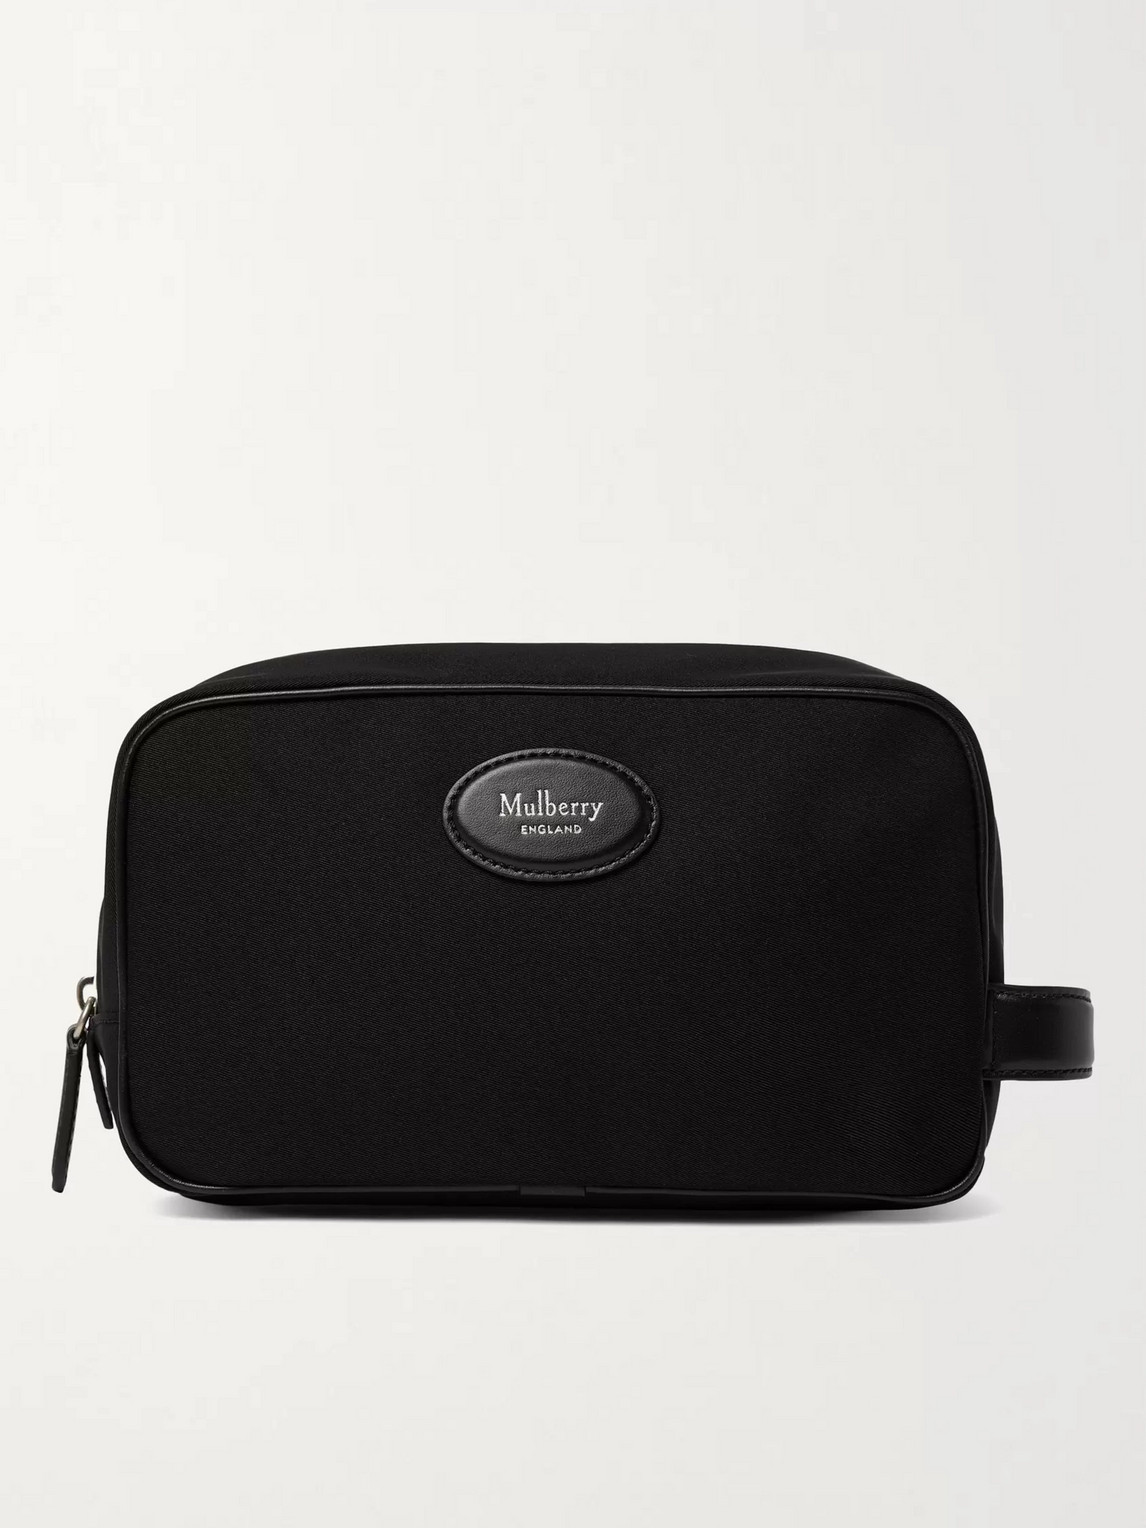 Mulberry Leather-trimmed Nylon Wash Bag In Black